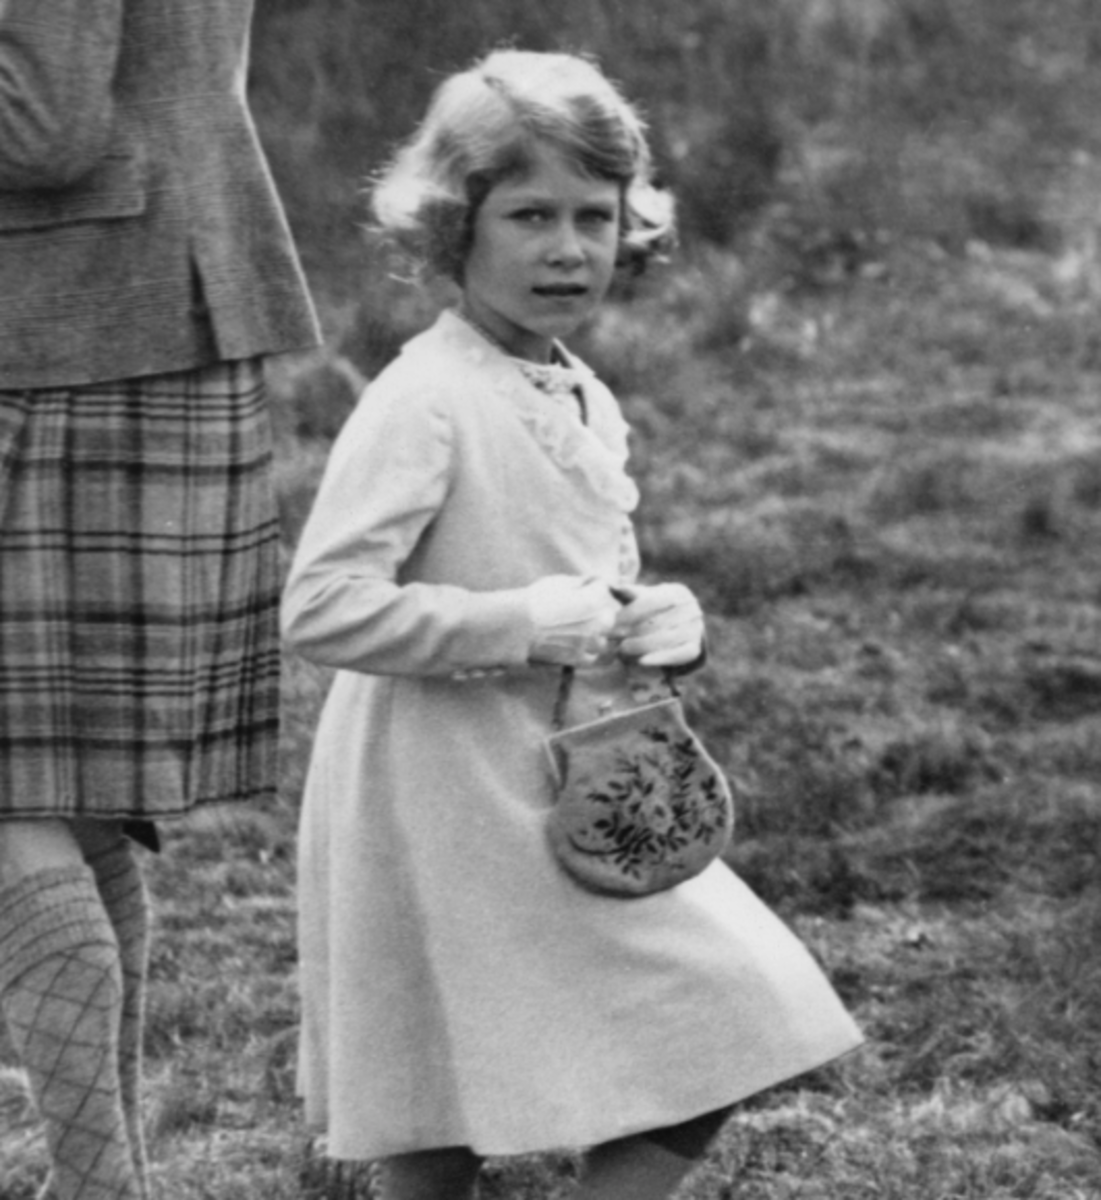 Queen Elizabeth carrying a handbag at seven years old in 1933